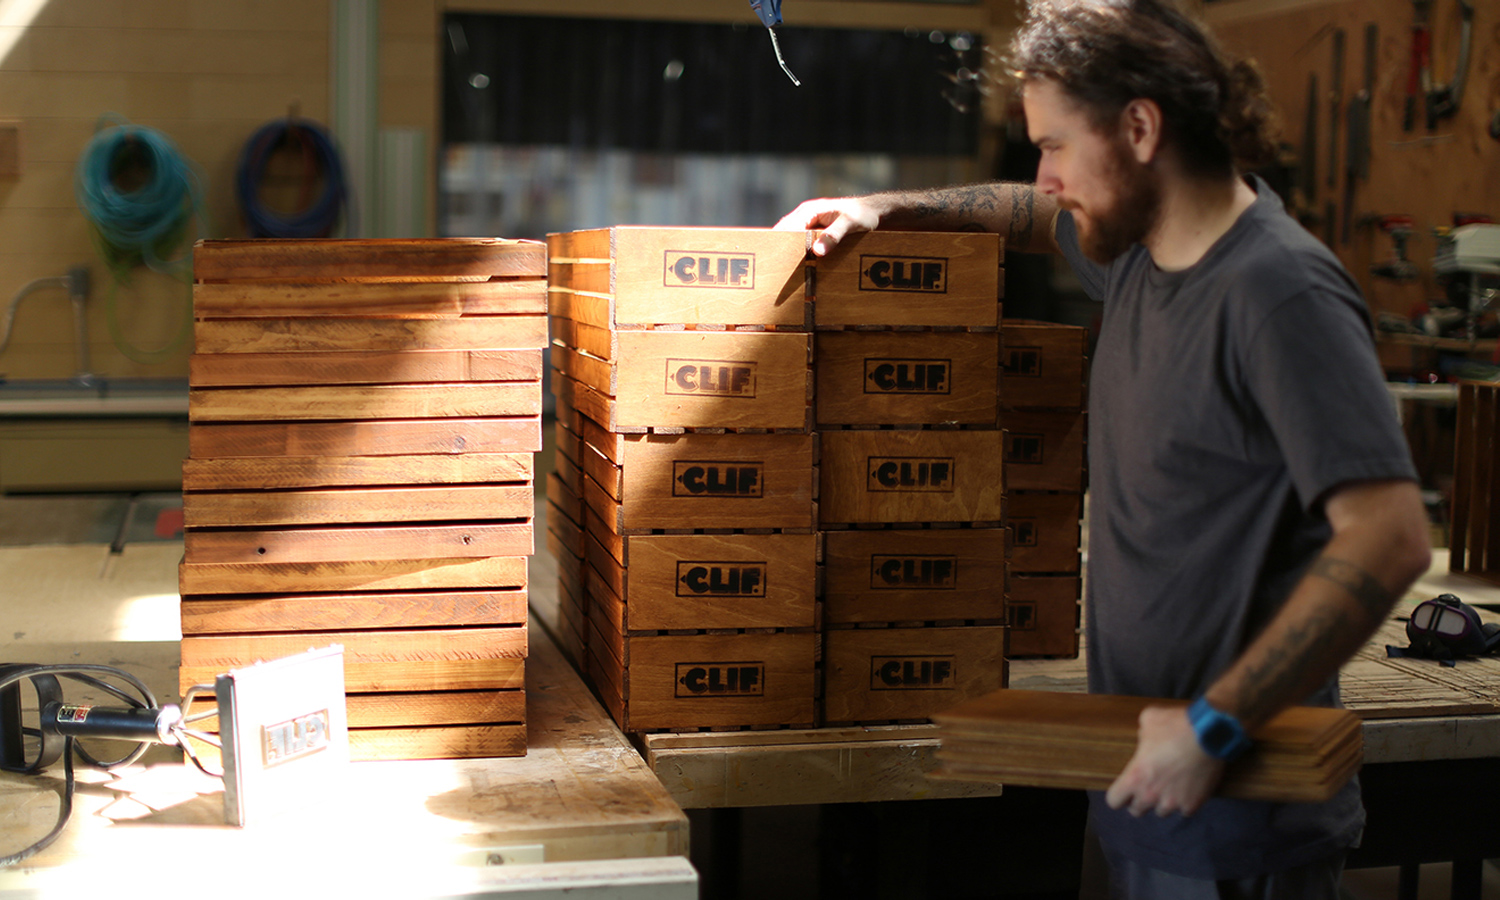 Clif Bar boxes made by AoSA Image